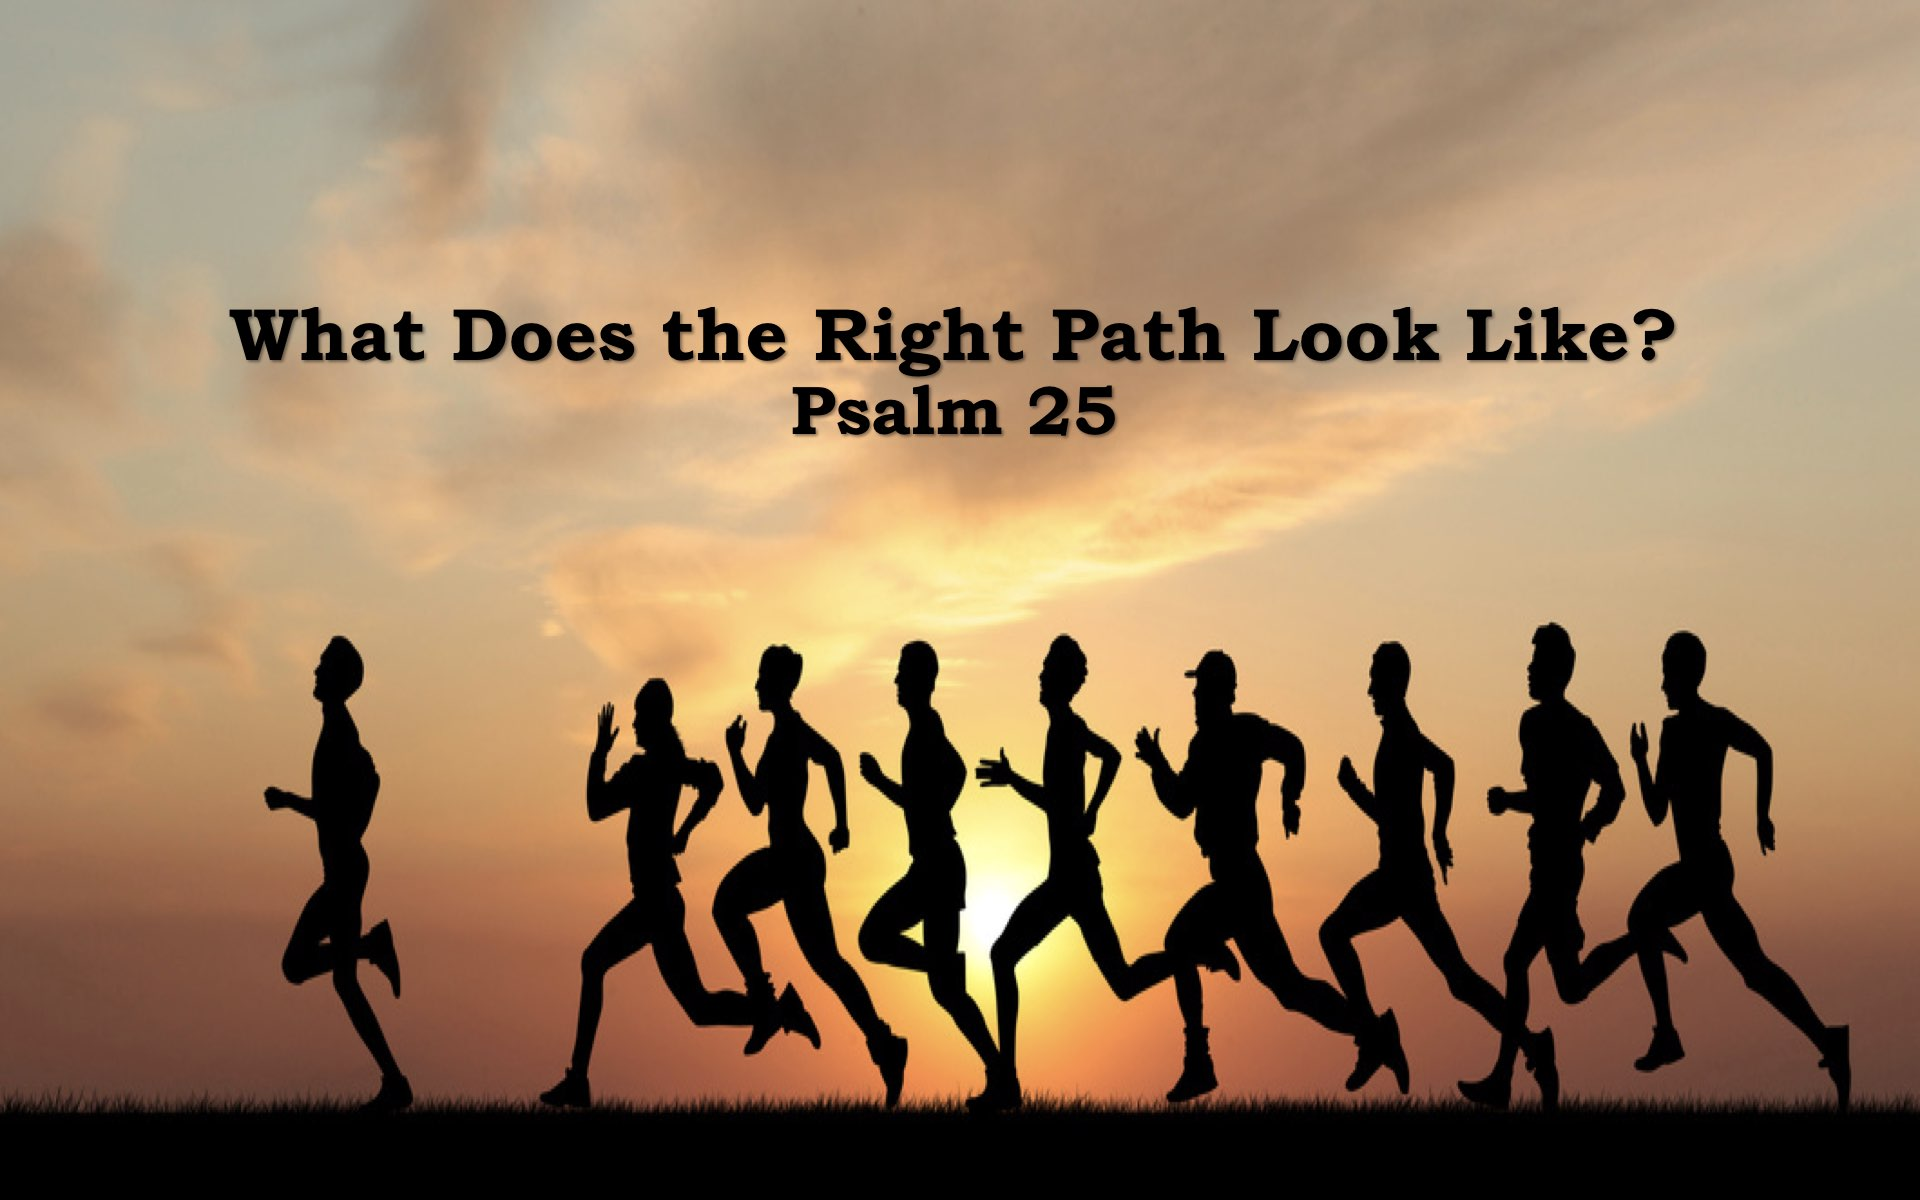 What Does the Right Path Look Like?